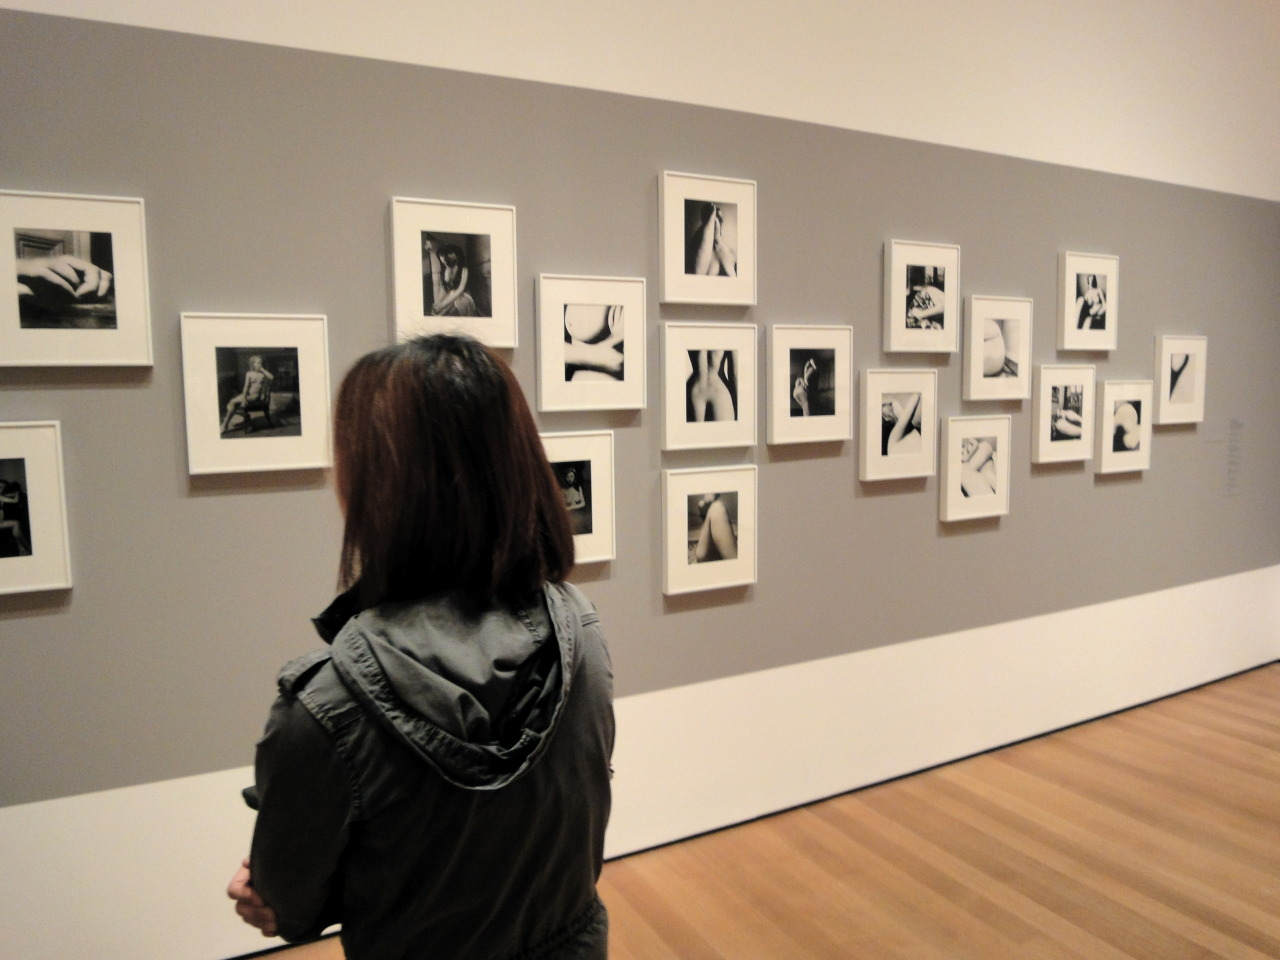 Bill Brandt 'Shadow and Light' exhibition on at MoMA